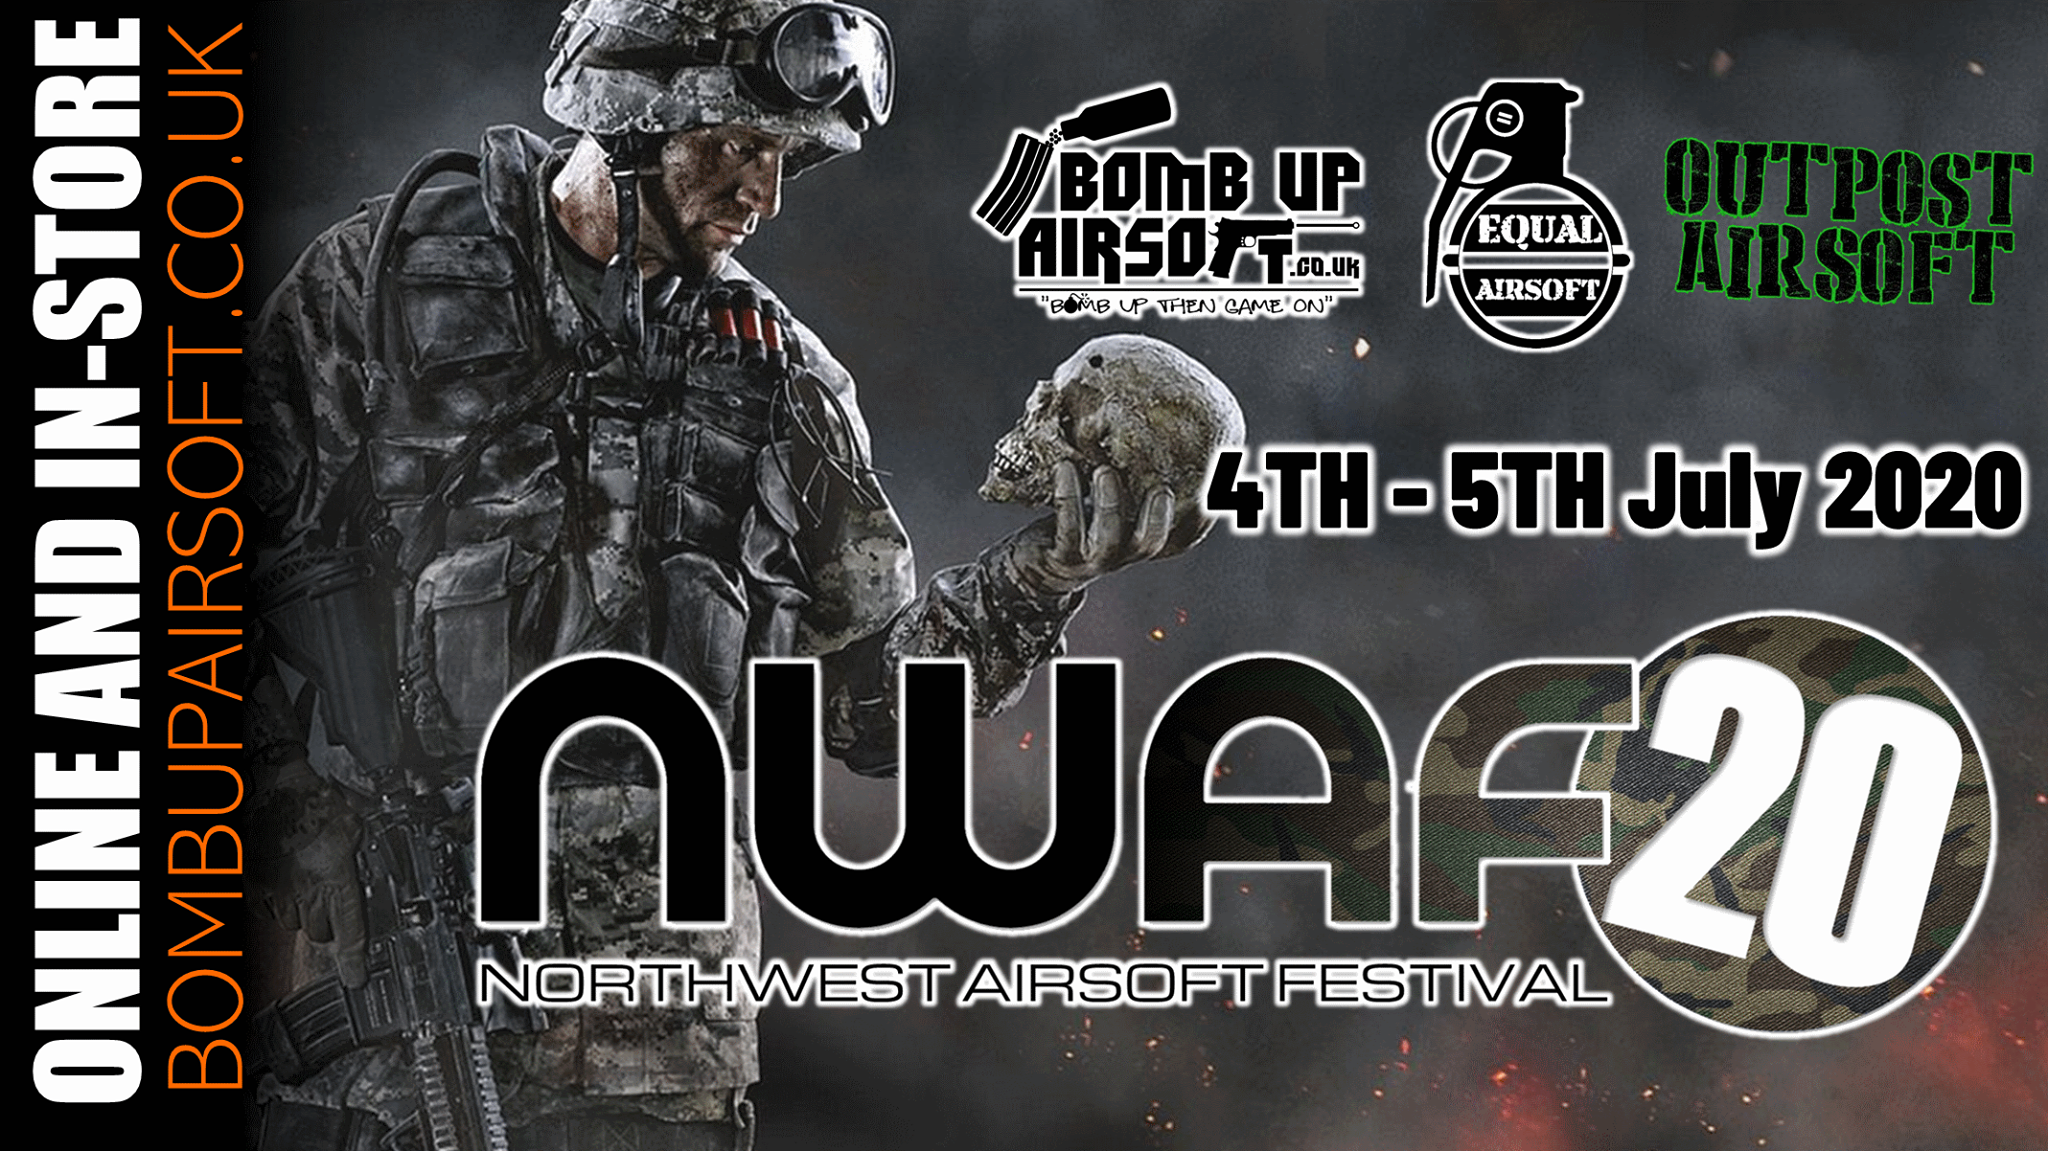 NWAF (North West Airsoft Fair) 4th and 5th July 2020